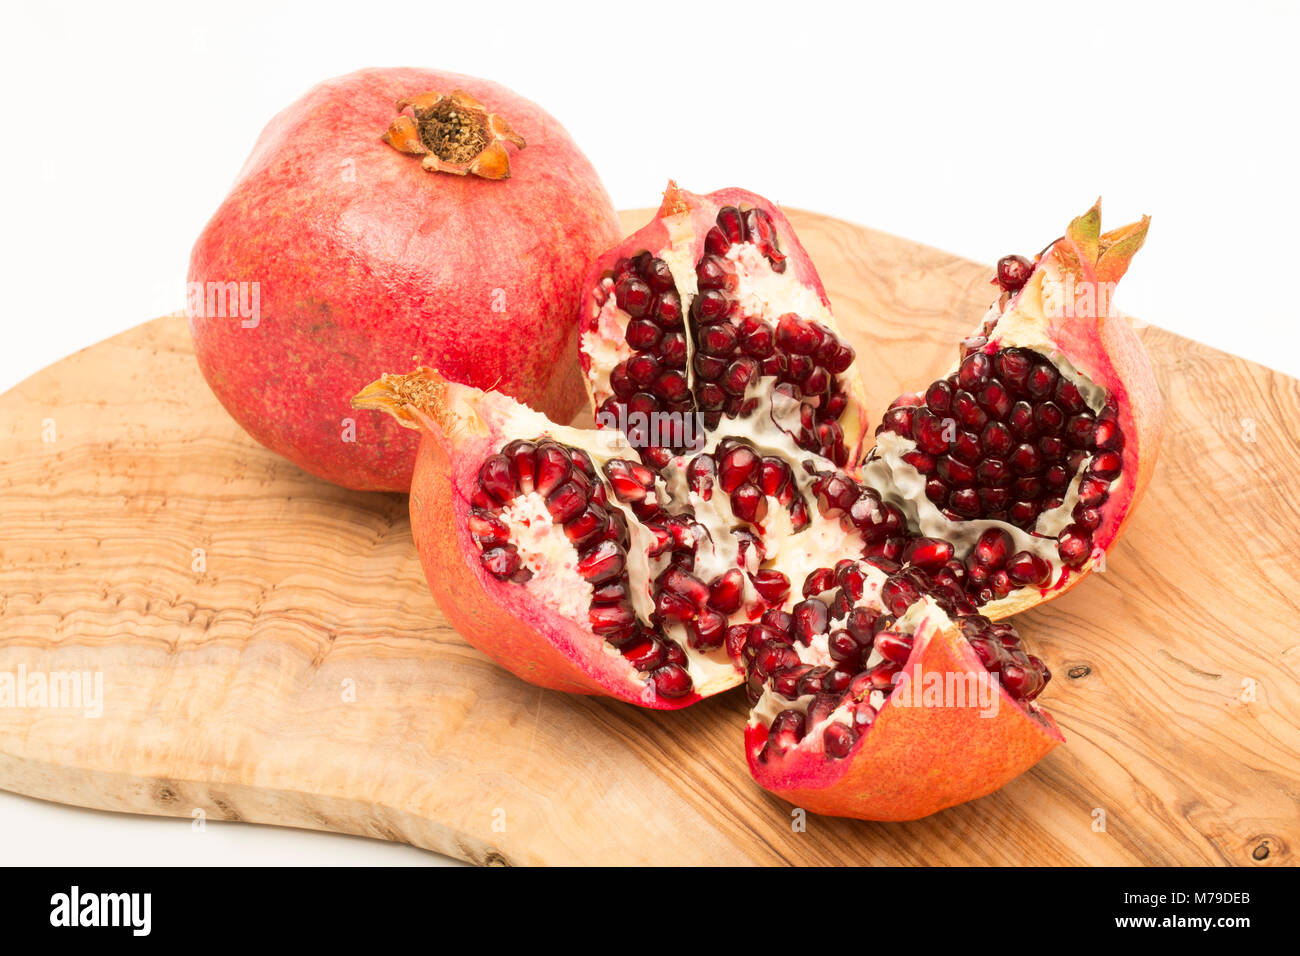 A pomegranate-Punica granatum-bought from a supermarket opened and showing the seeds. Photographed on a white background. - Stock Image